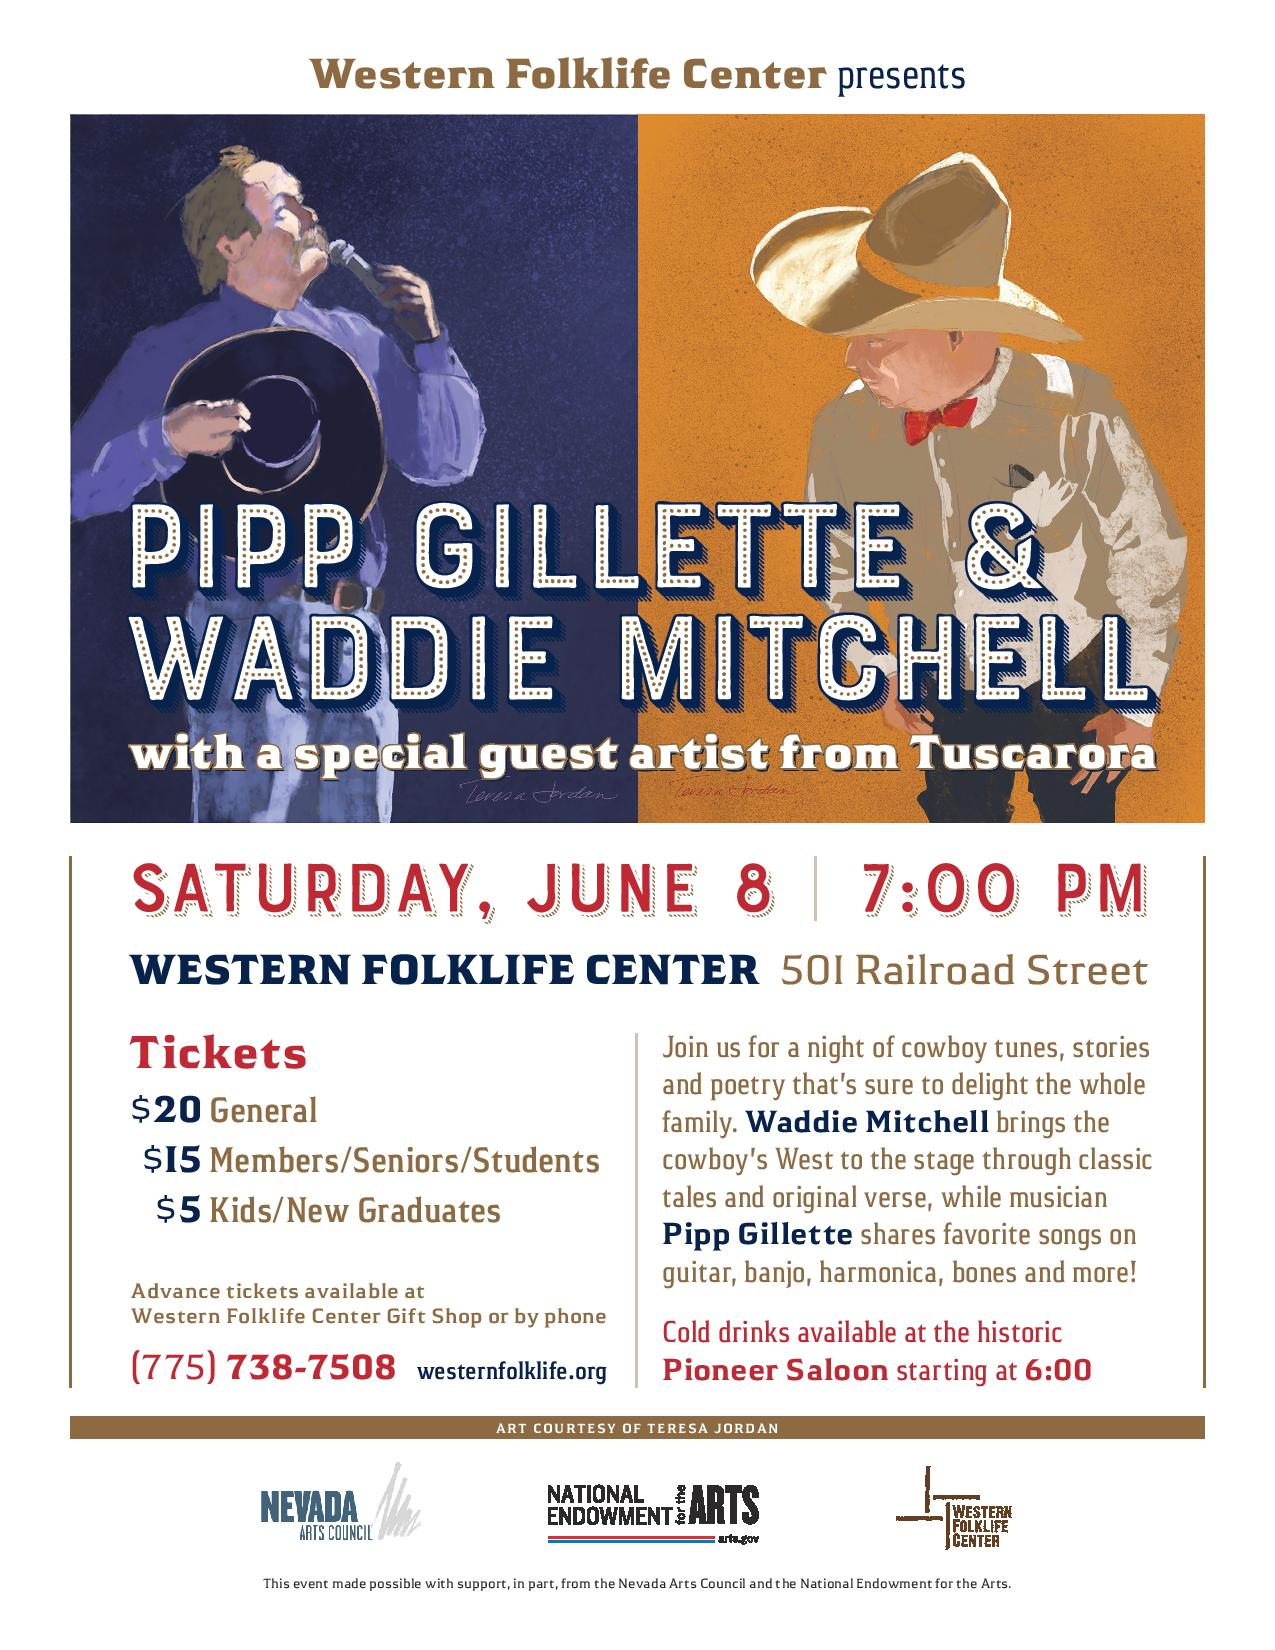 Artwork of Waddie Mitchell and Pipp Gillette by Teresa Jordan